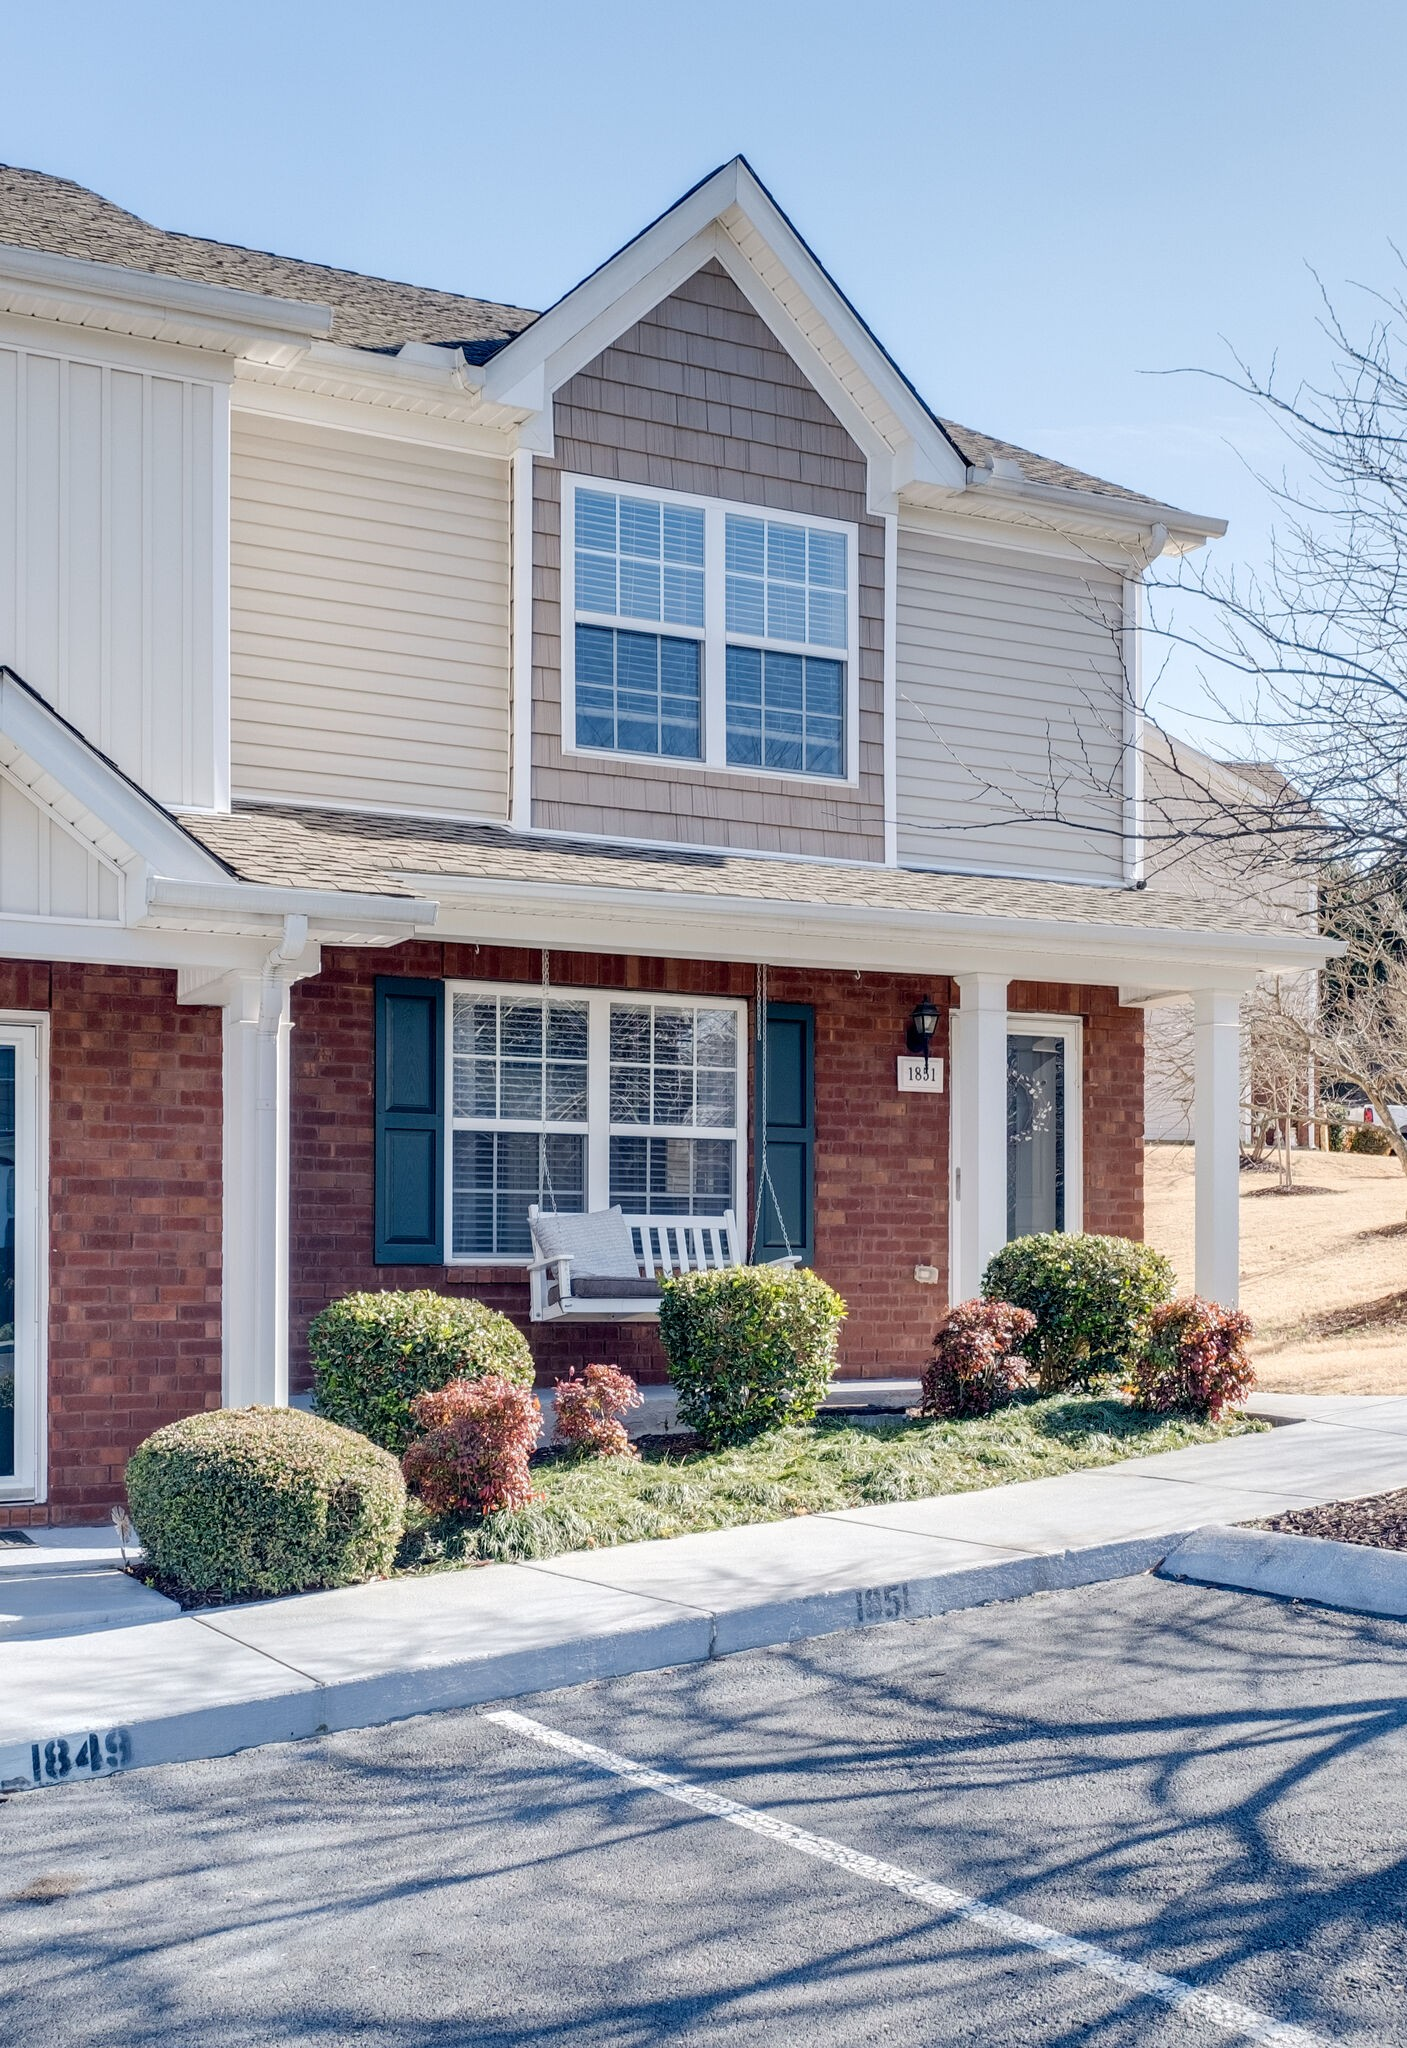 1851 Shaylin Loop Property Photo - Antioch, TN real estate listing